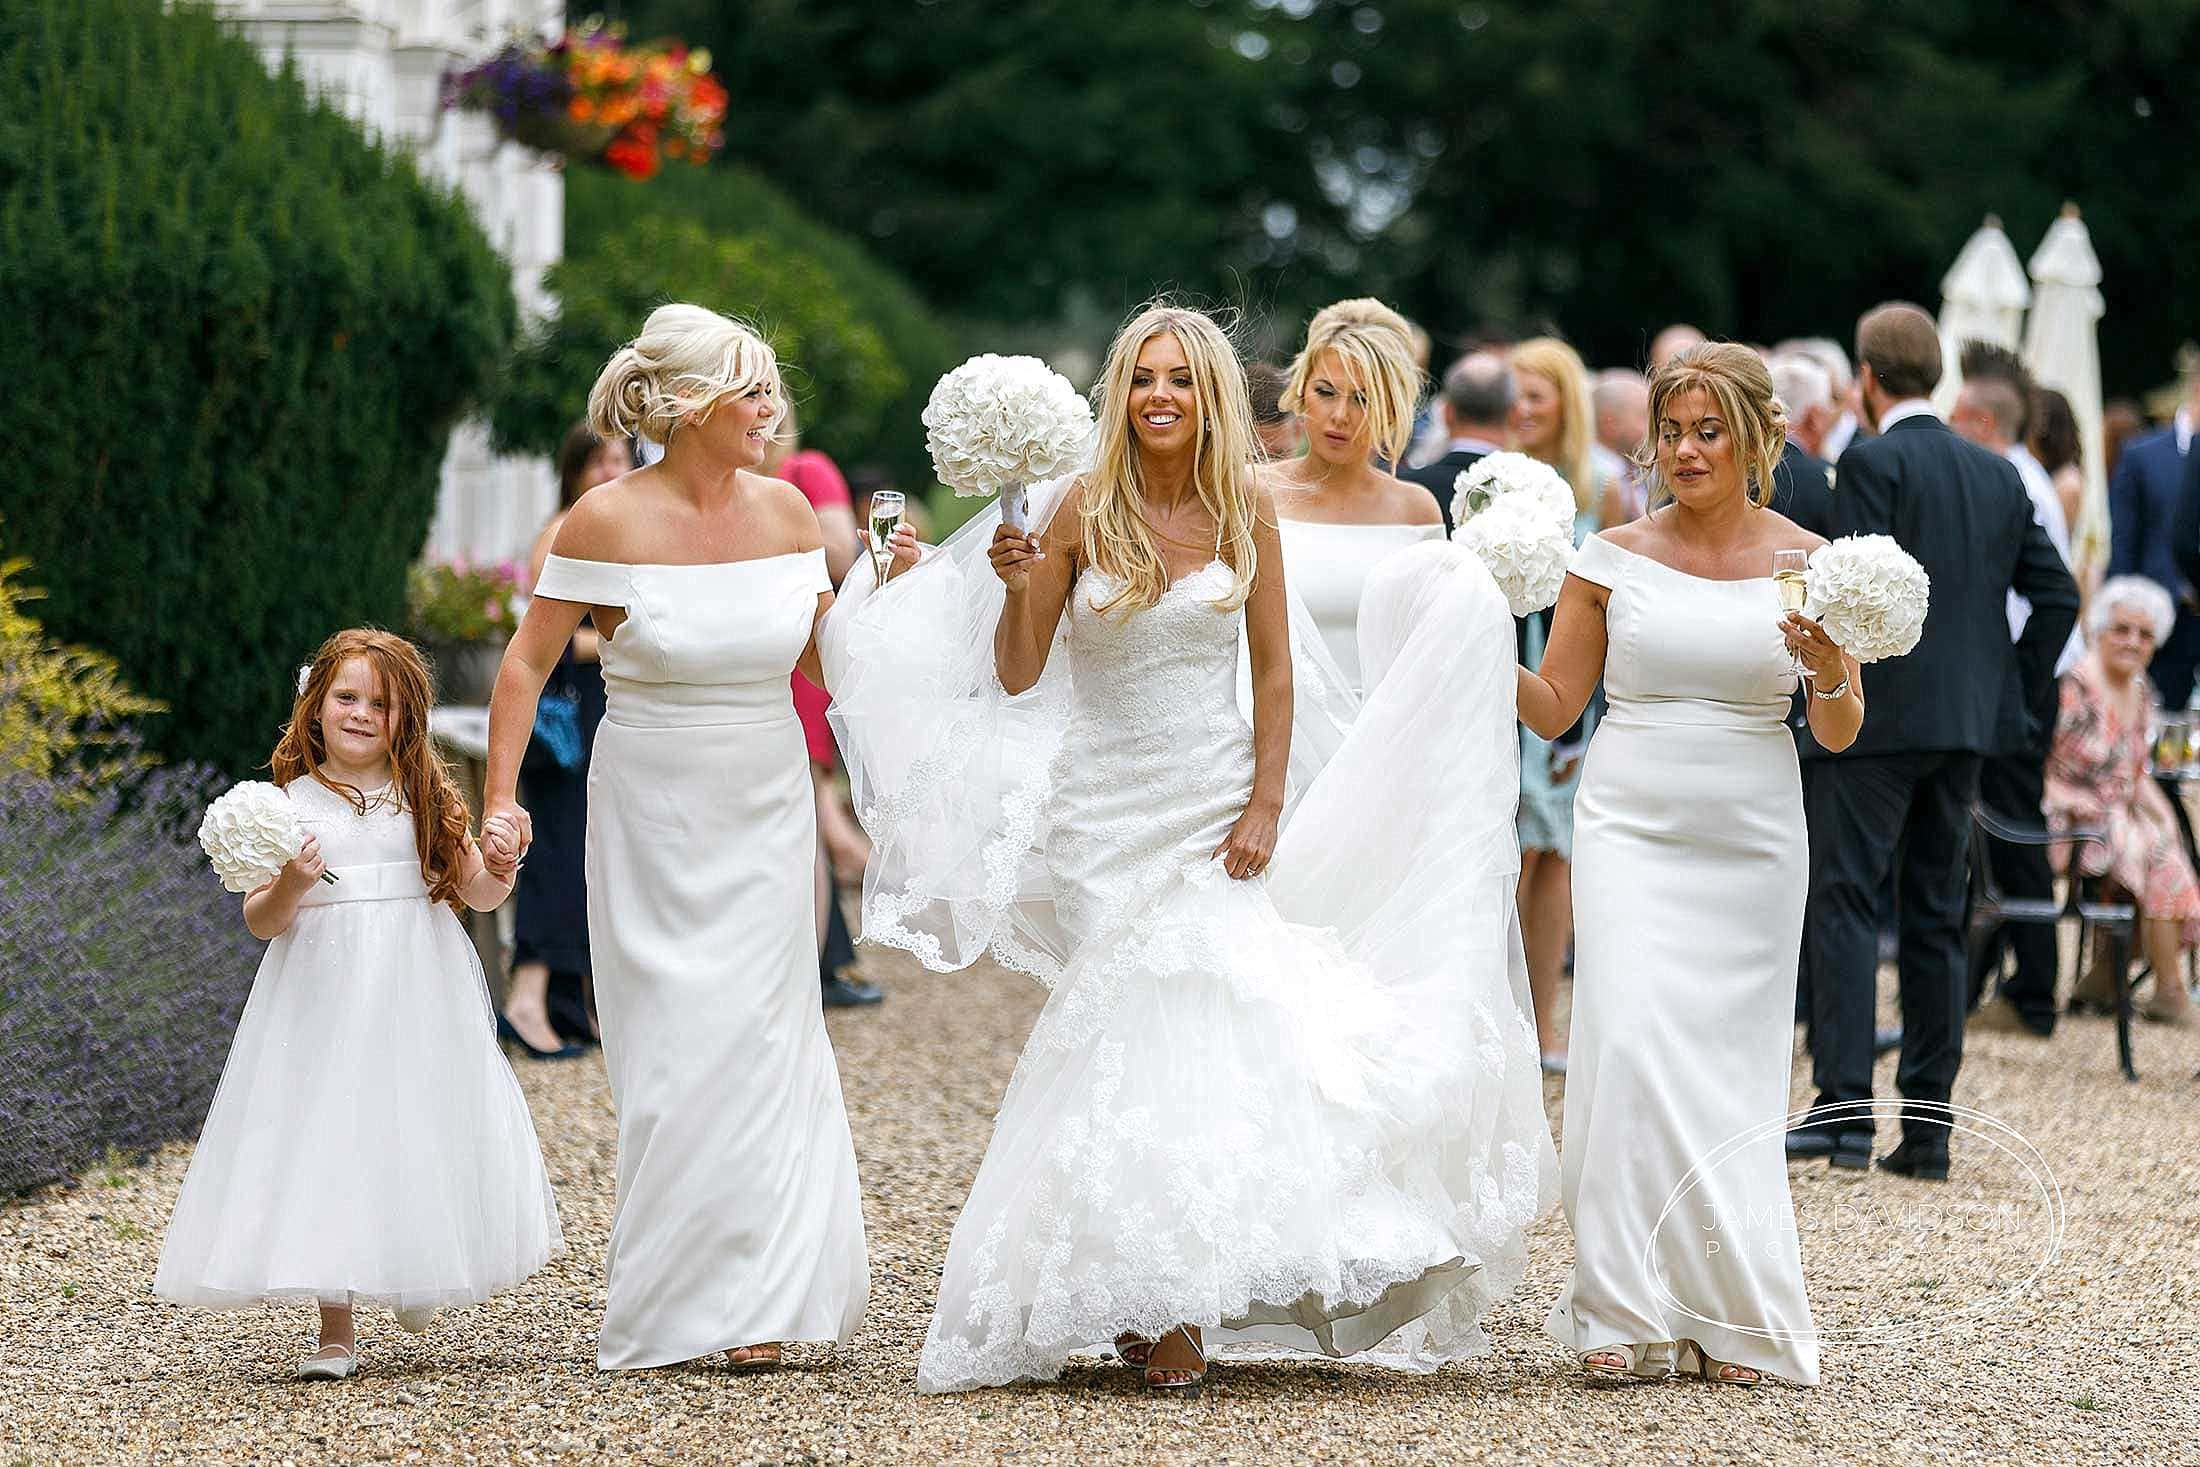 gosfield-hall-wedding-photography-080